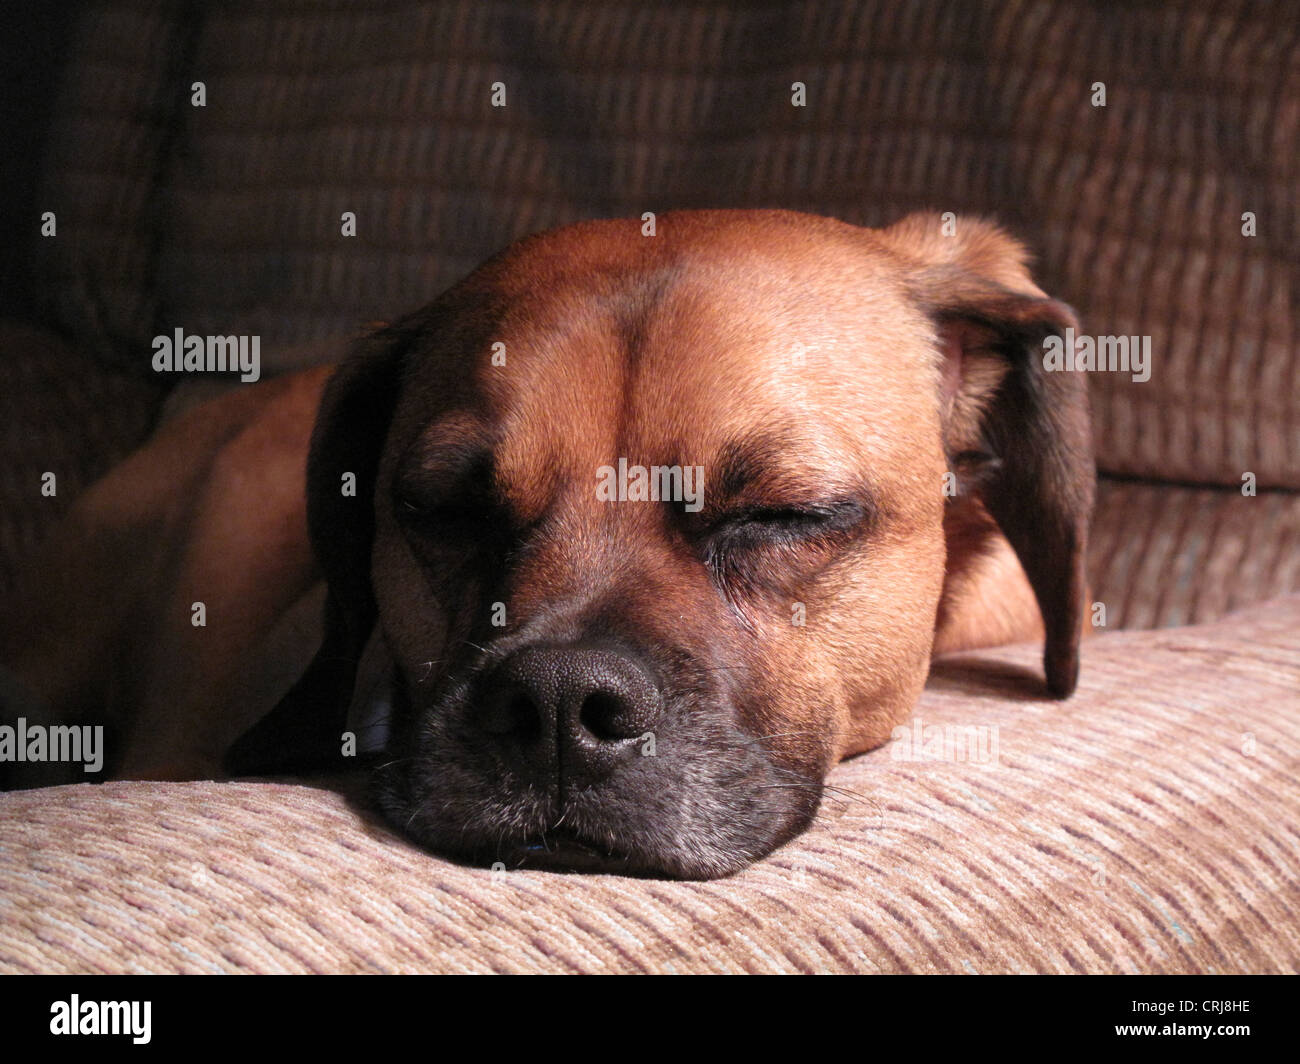 Dog laying on chair arm Stock Photo